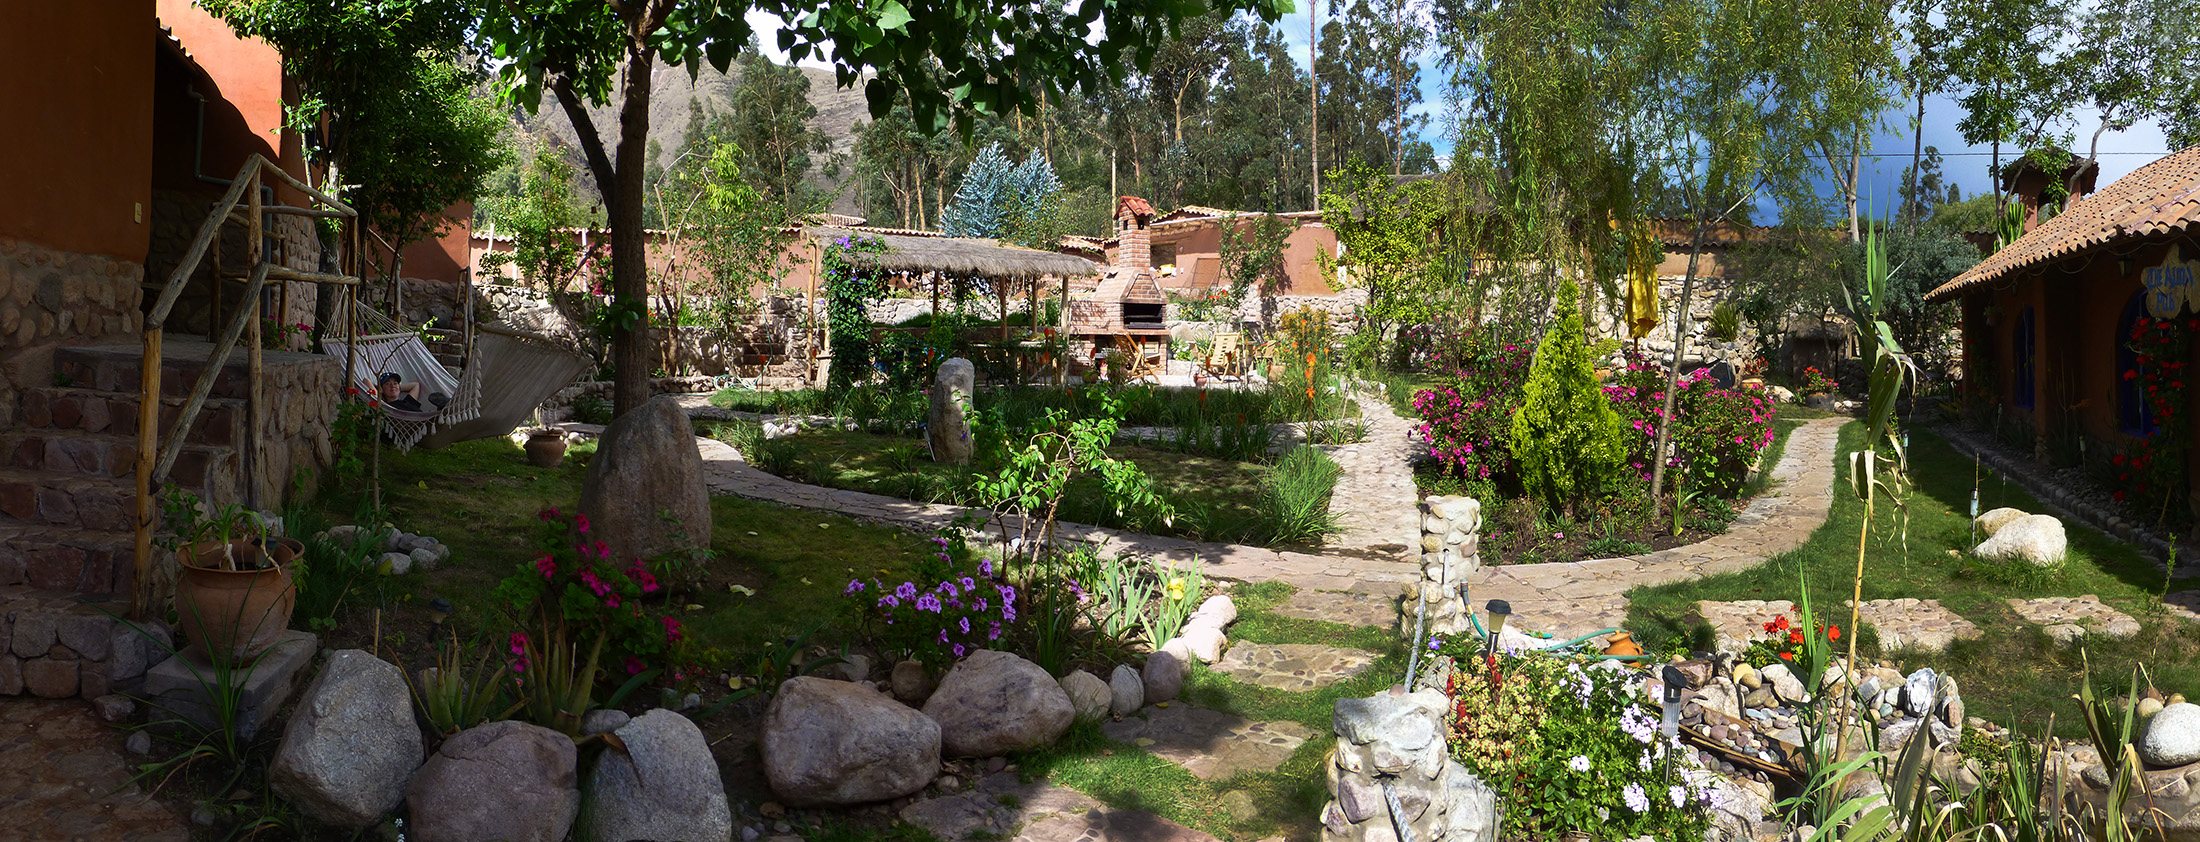 The Gardens of La Capilla